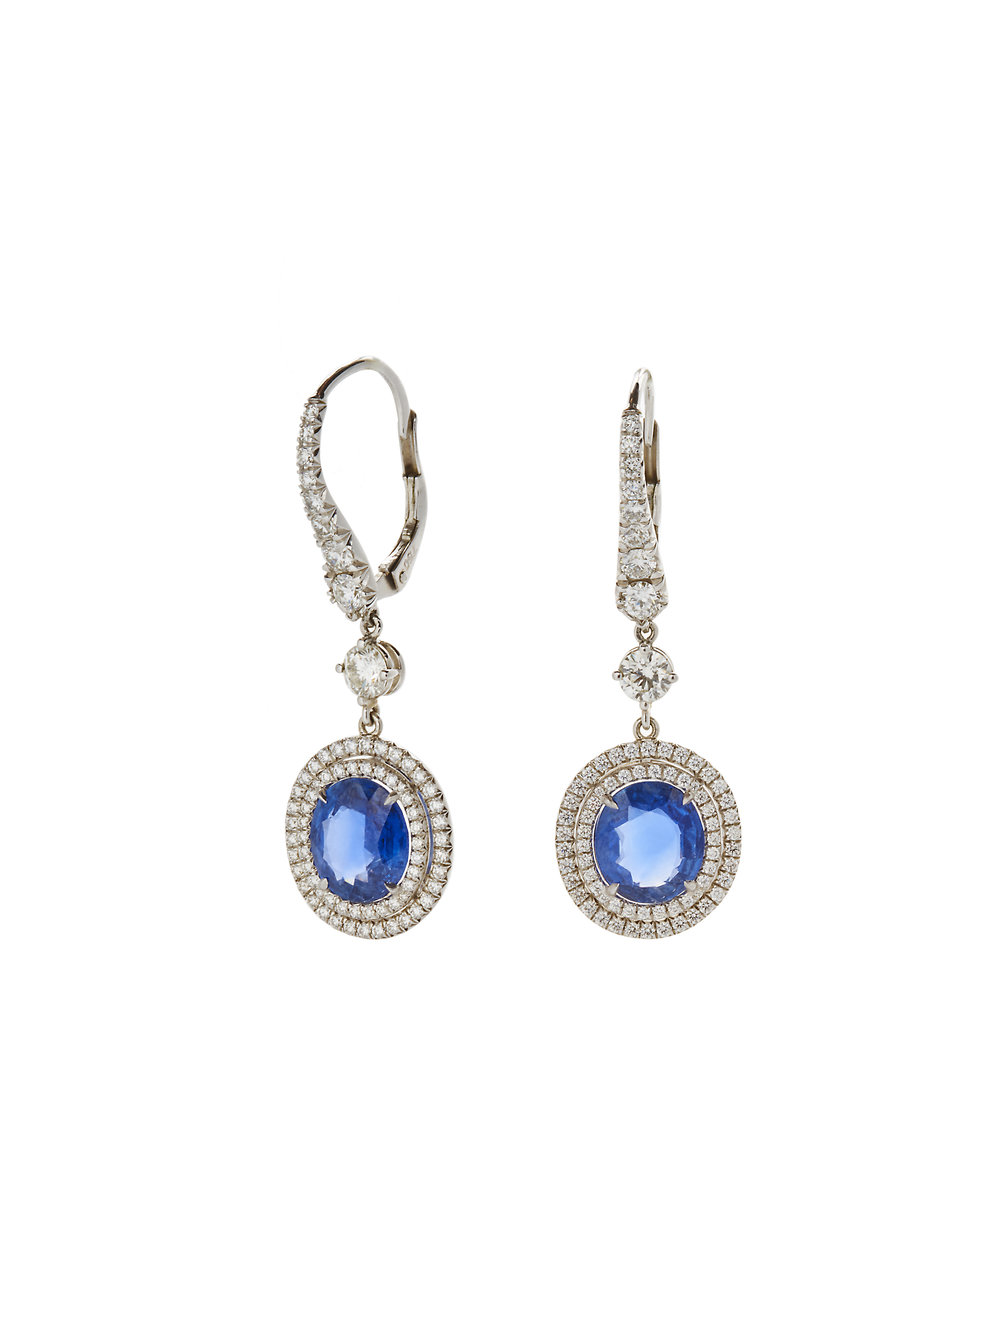 GUINEVERE EARRINGS    18K GOLD 1.63 CT OF DIAMONDS 6.5 CT OF NATURAL SAPPHIRES      Contact for inquiry